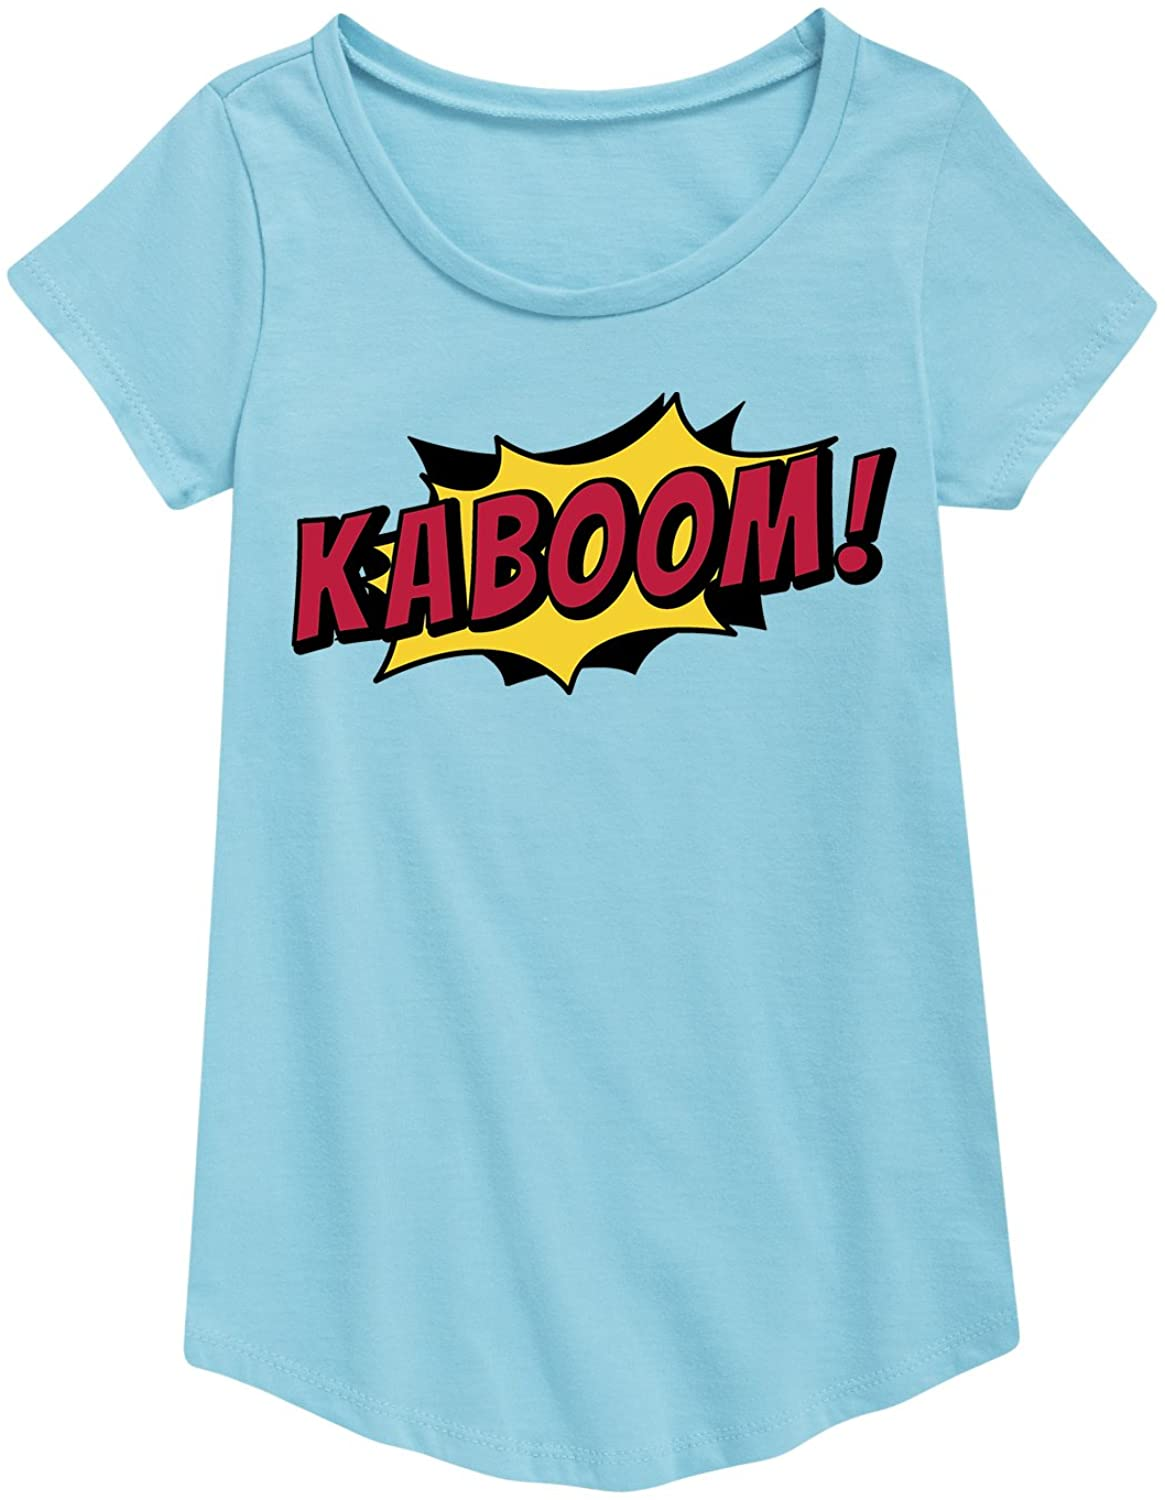 Instant Message Kaboom - Youth Girl Short Sleeve Curved Hem Tee